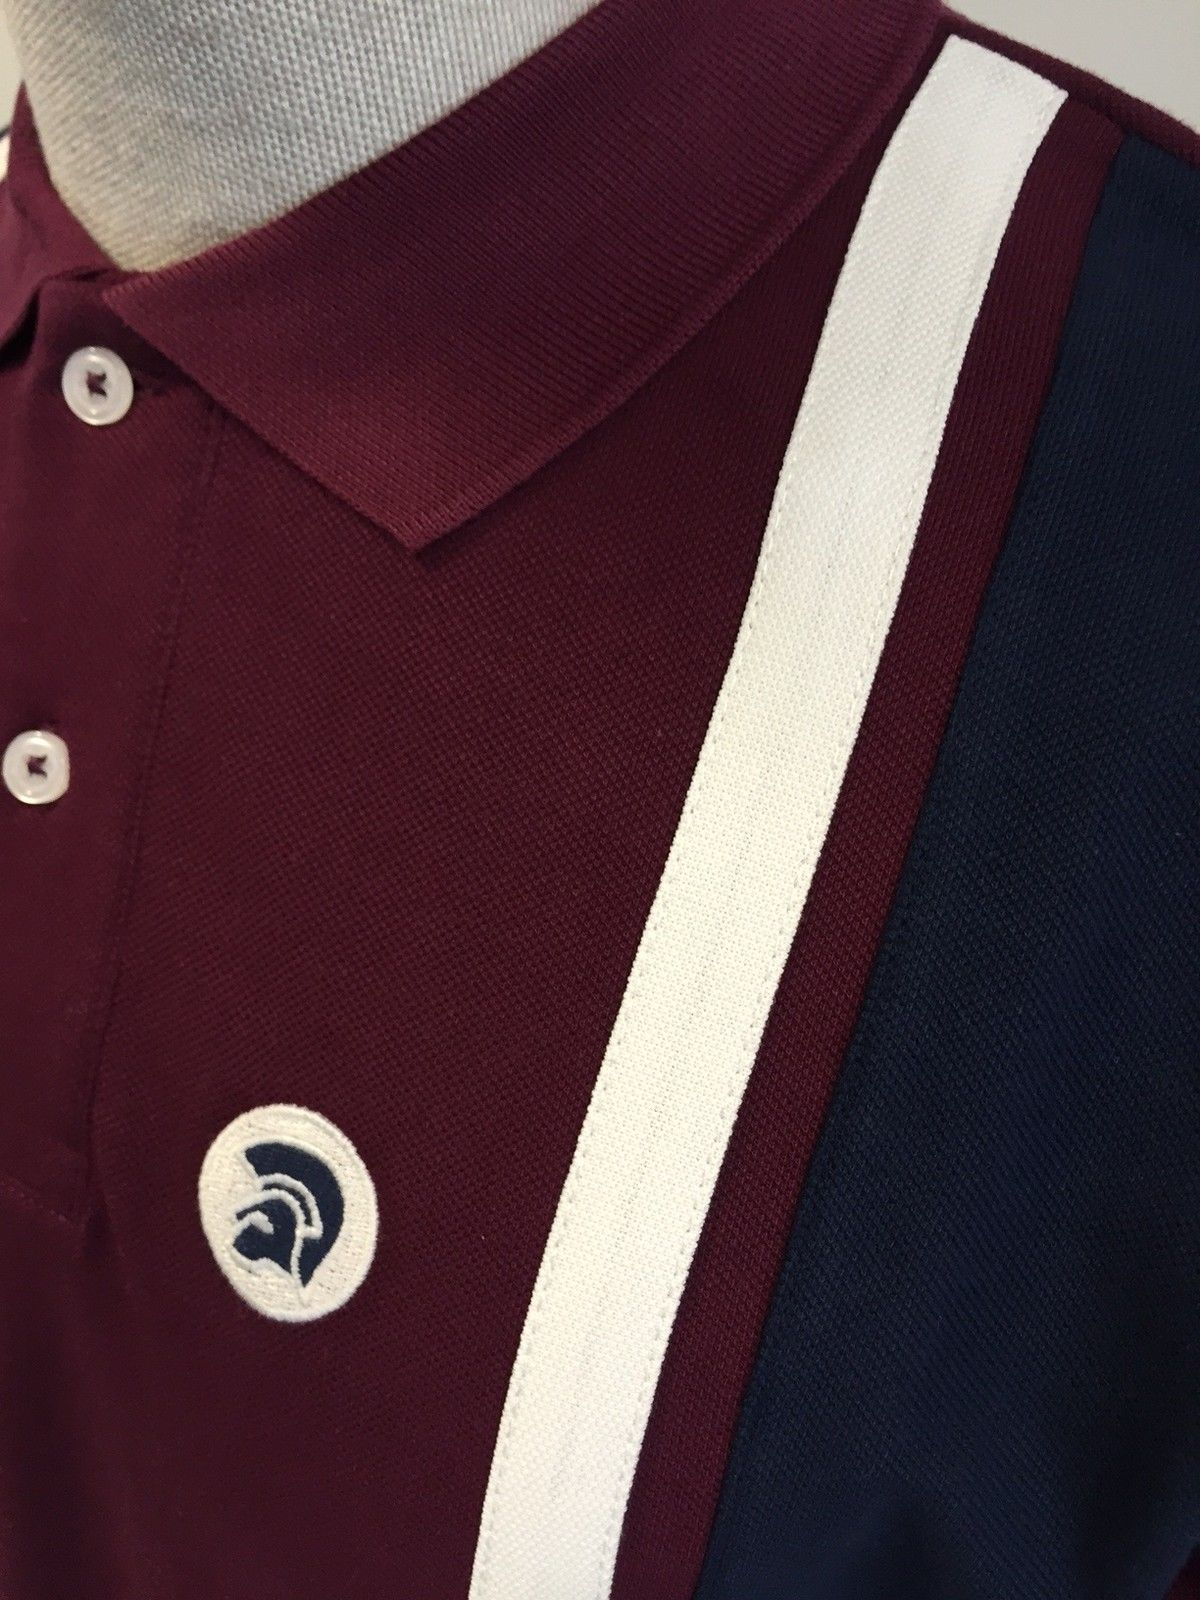 Trojan-TR-8183-maroon-short-sleeve-stripe-front-pique-polo-shirt-size-small-3XL thumbnail 5